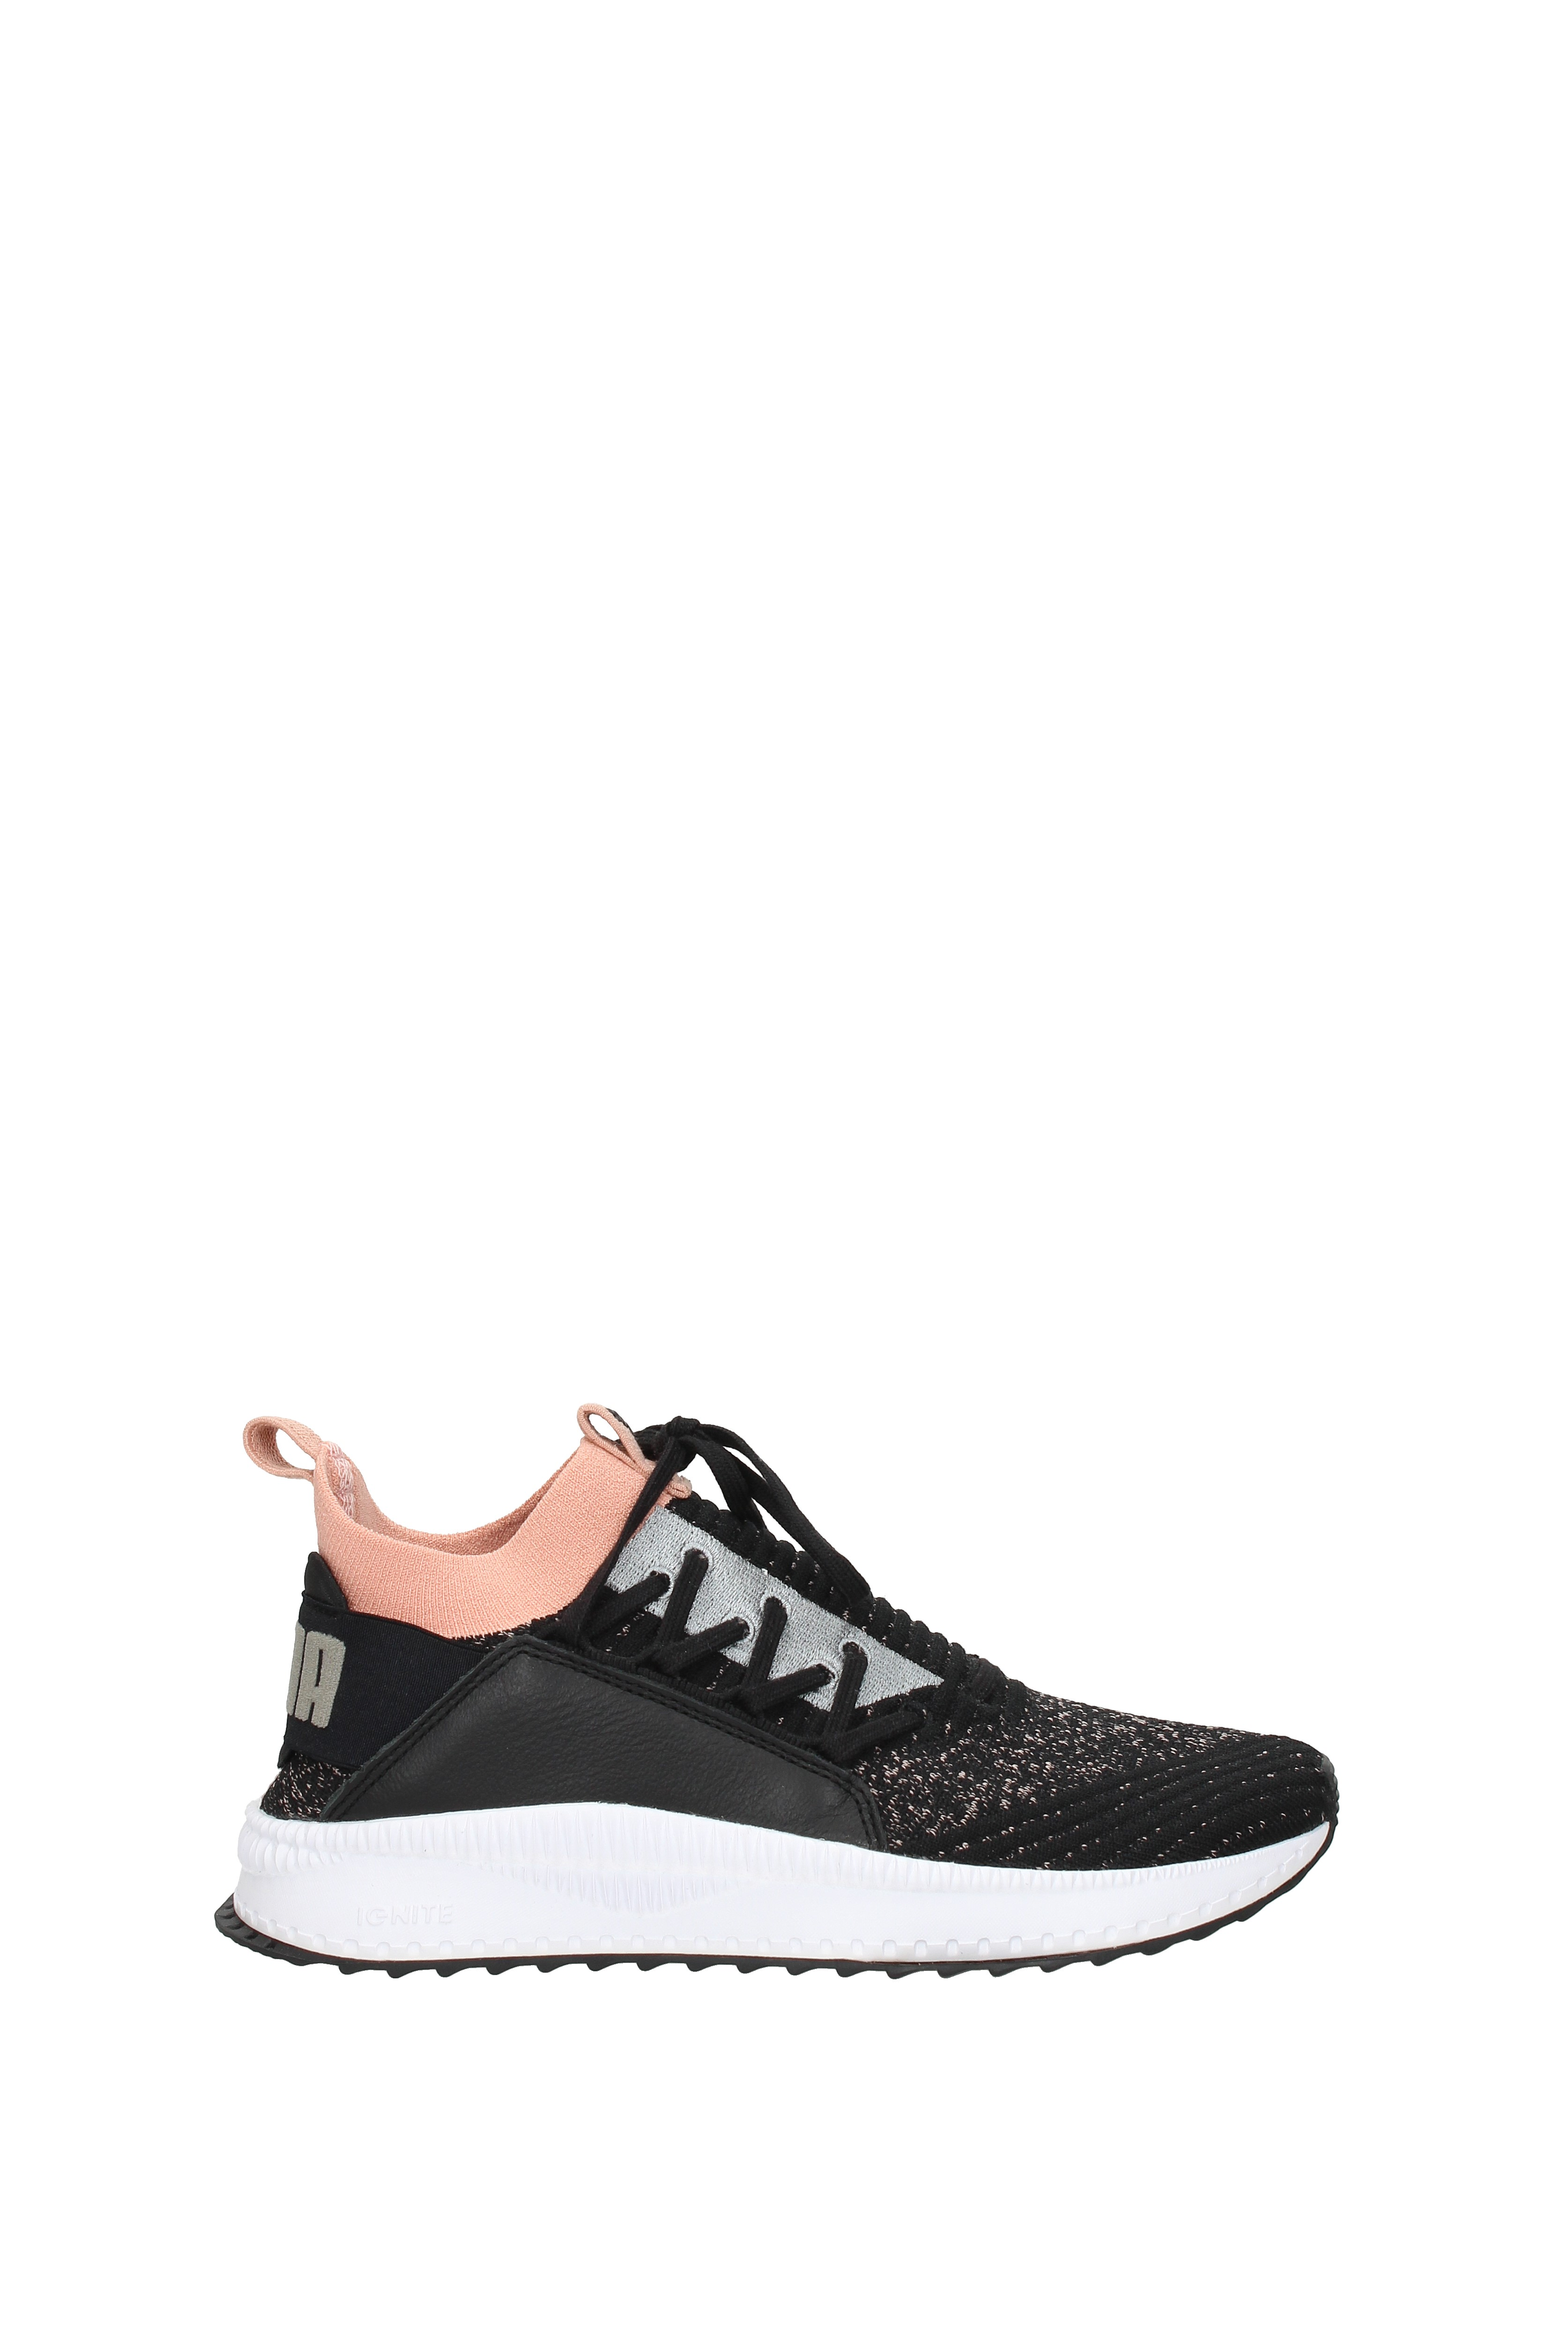 Sneakers - Puma tsugi jun Damenschuhe - Sneakers Tessuto (367038) 257653